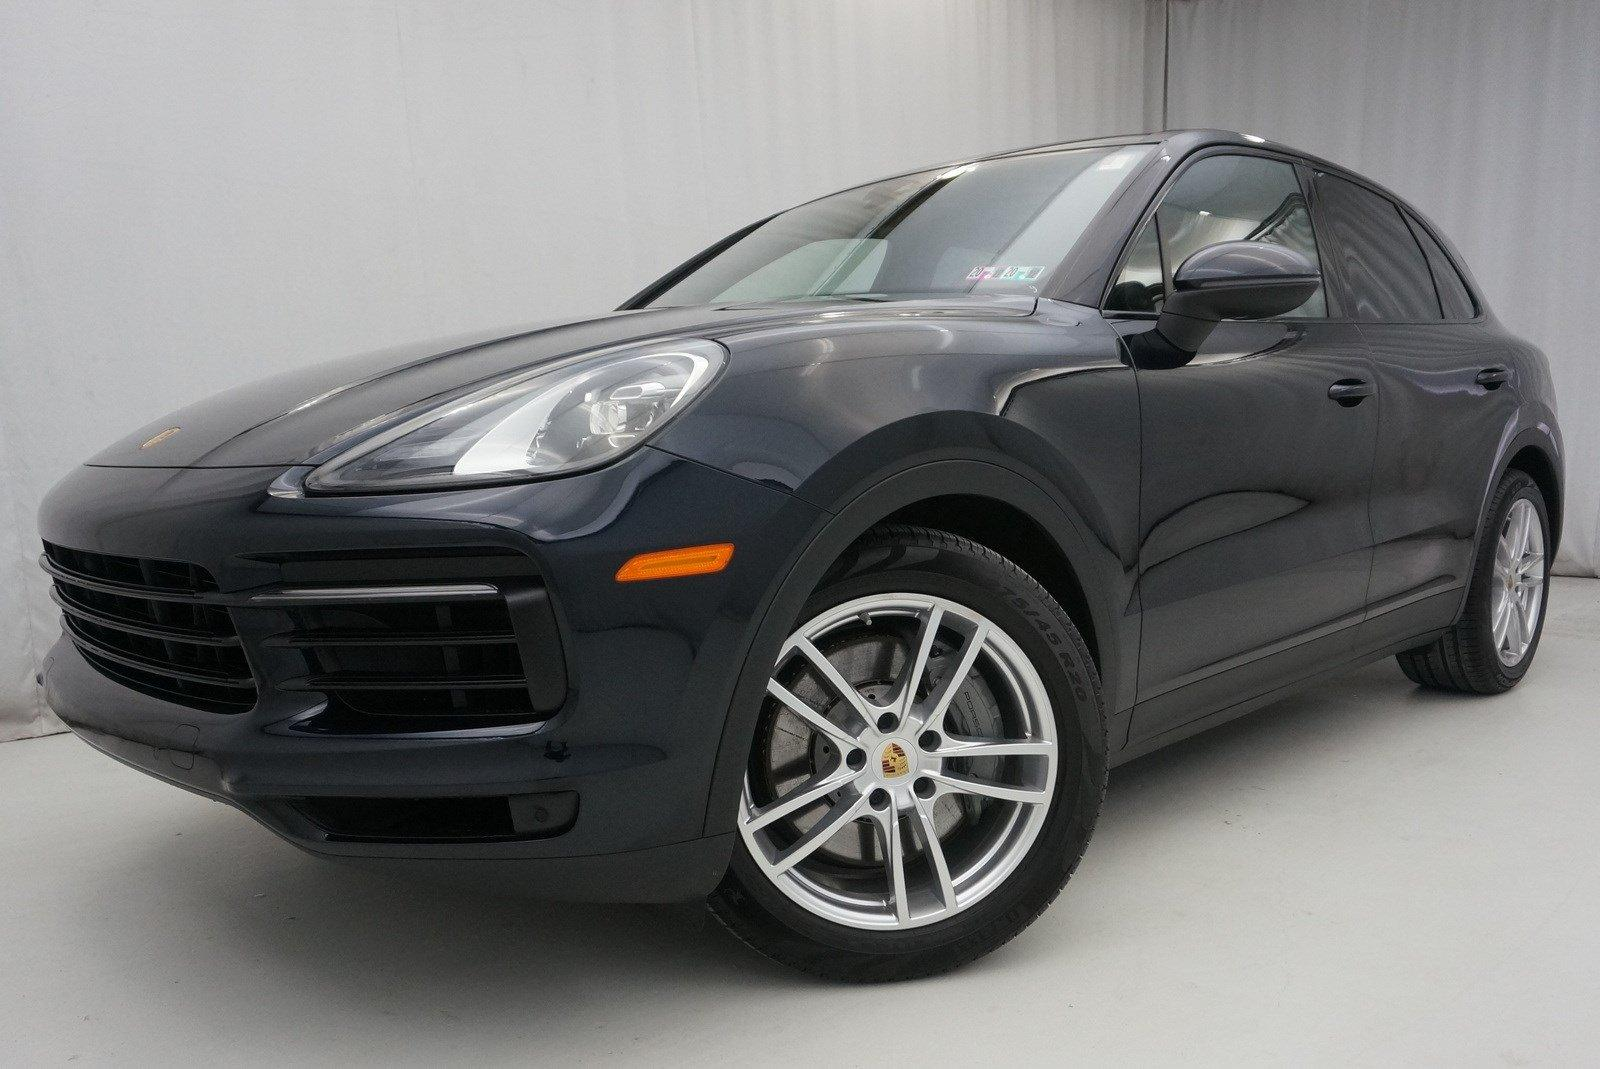 Used 2019 Porsche Cayenne S | King of Prussia, PA